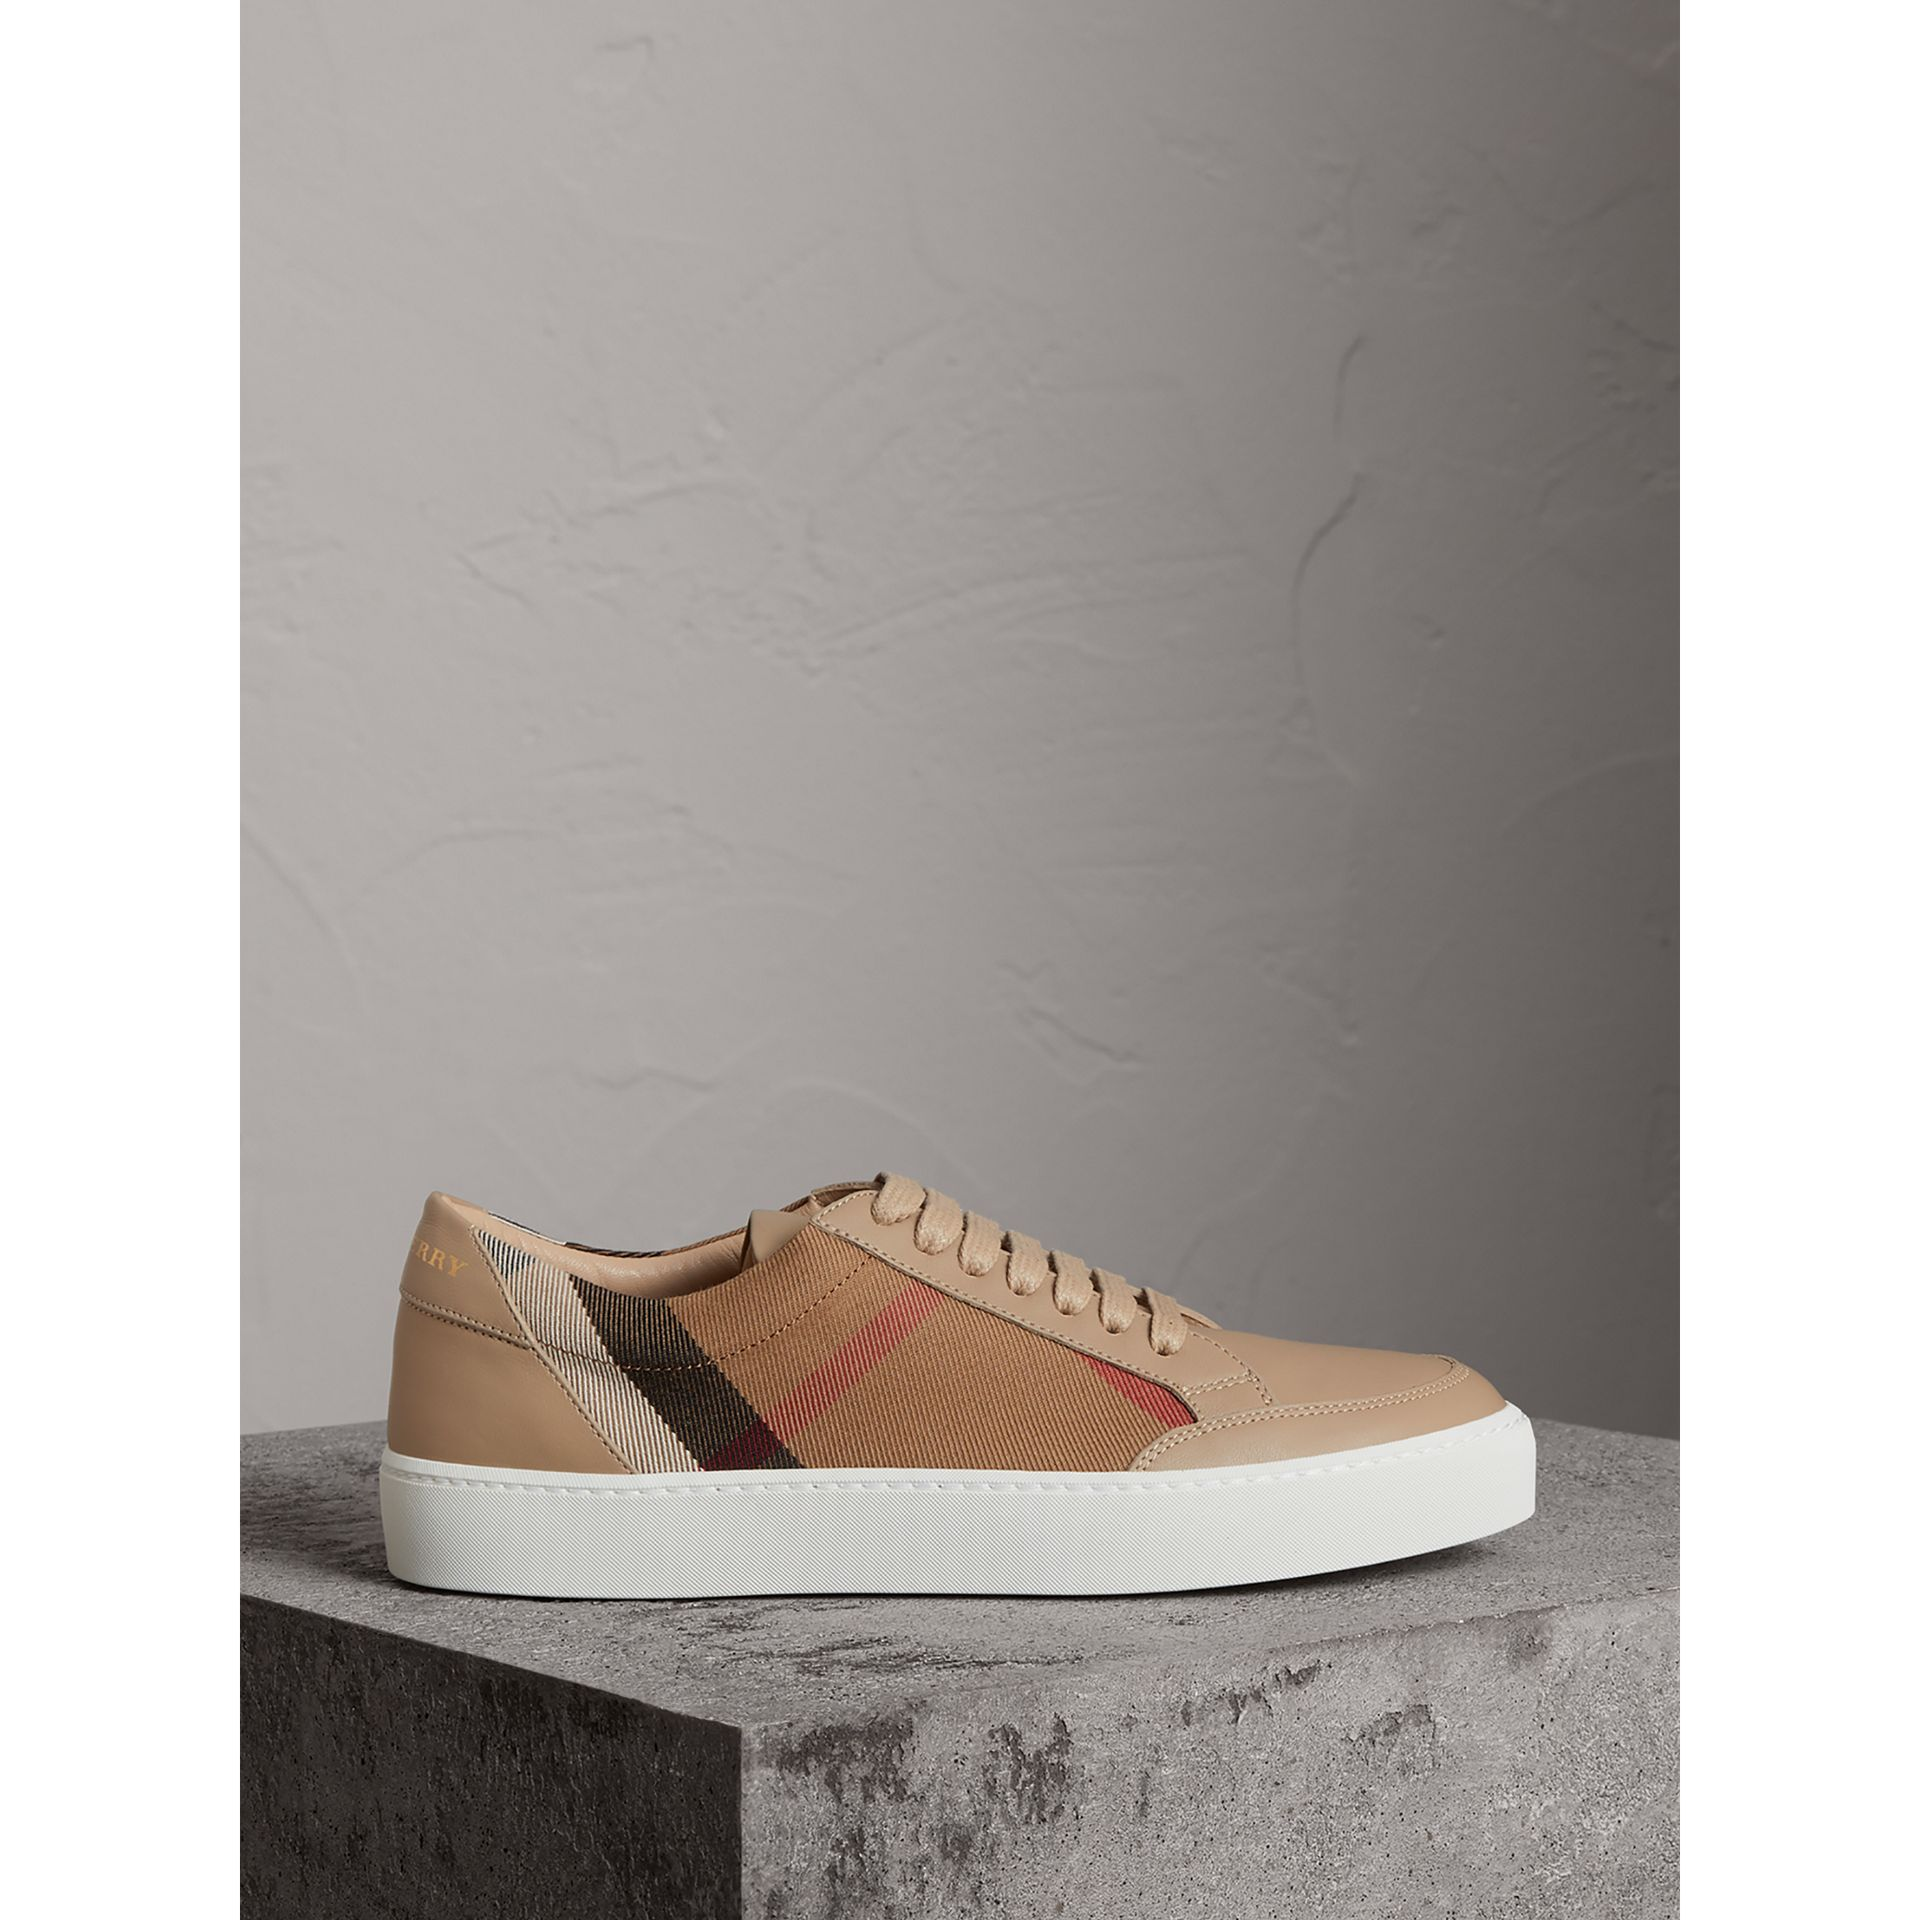 Check Detail Leather Sneakers in House Check/ Nude - Women | Burberry United Kingdom - gallery image 4